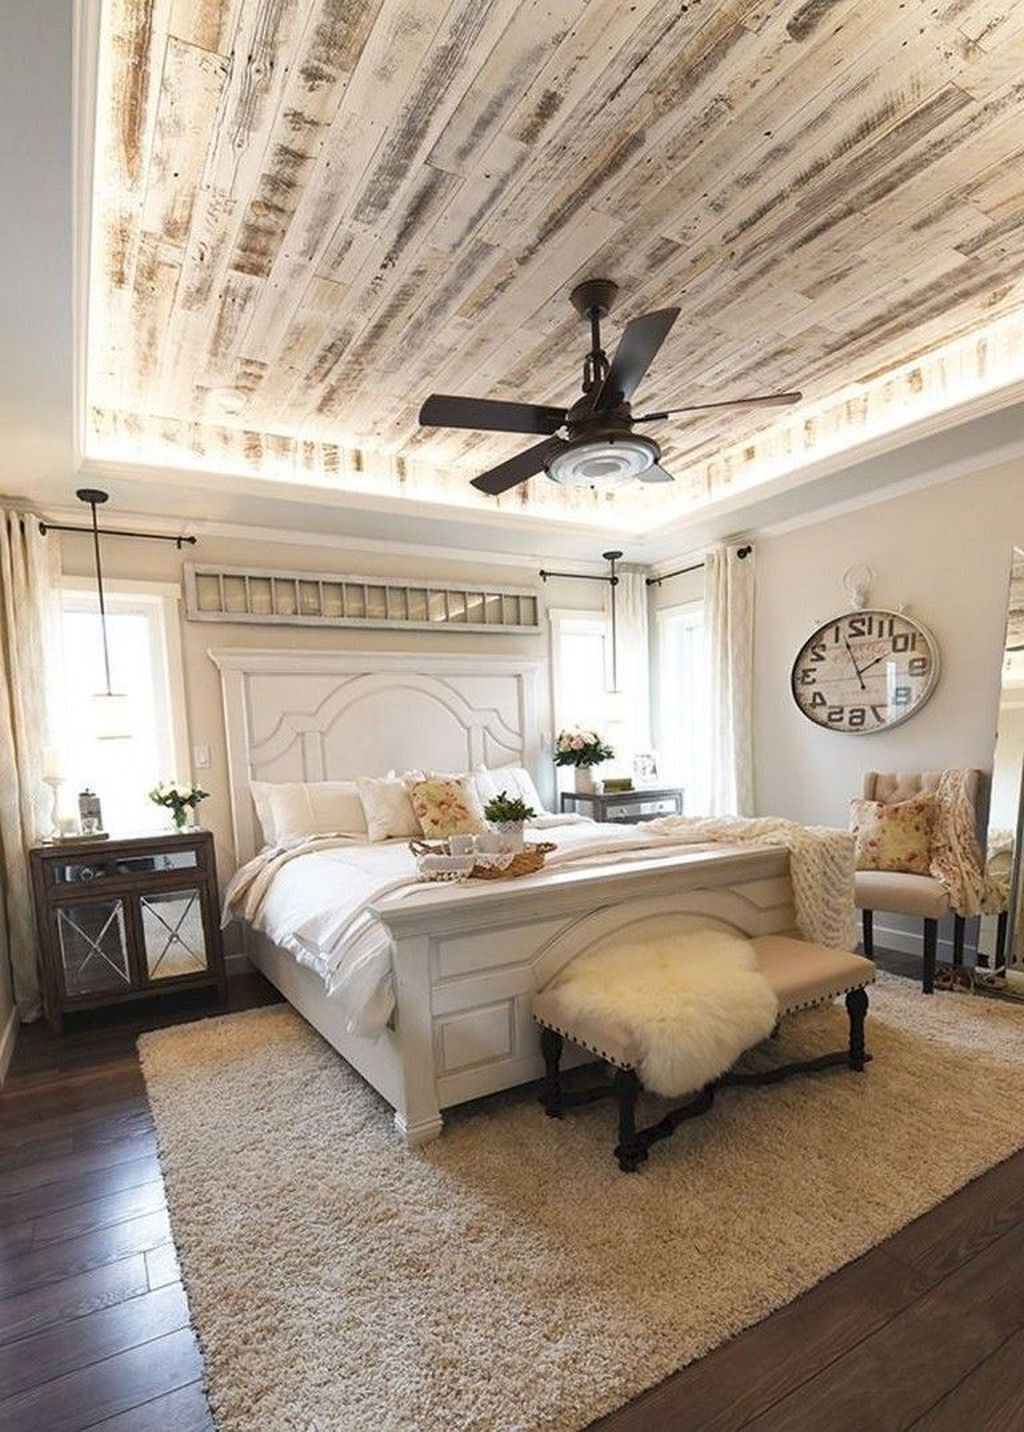 42 Romantic Rustic Farmhouse Bedroom Design And Decorations Ideas